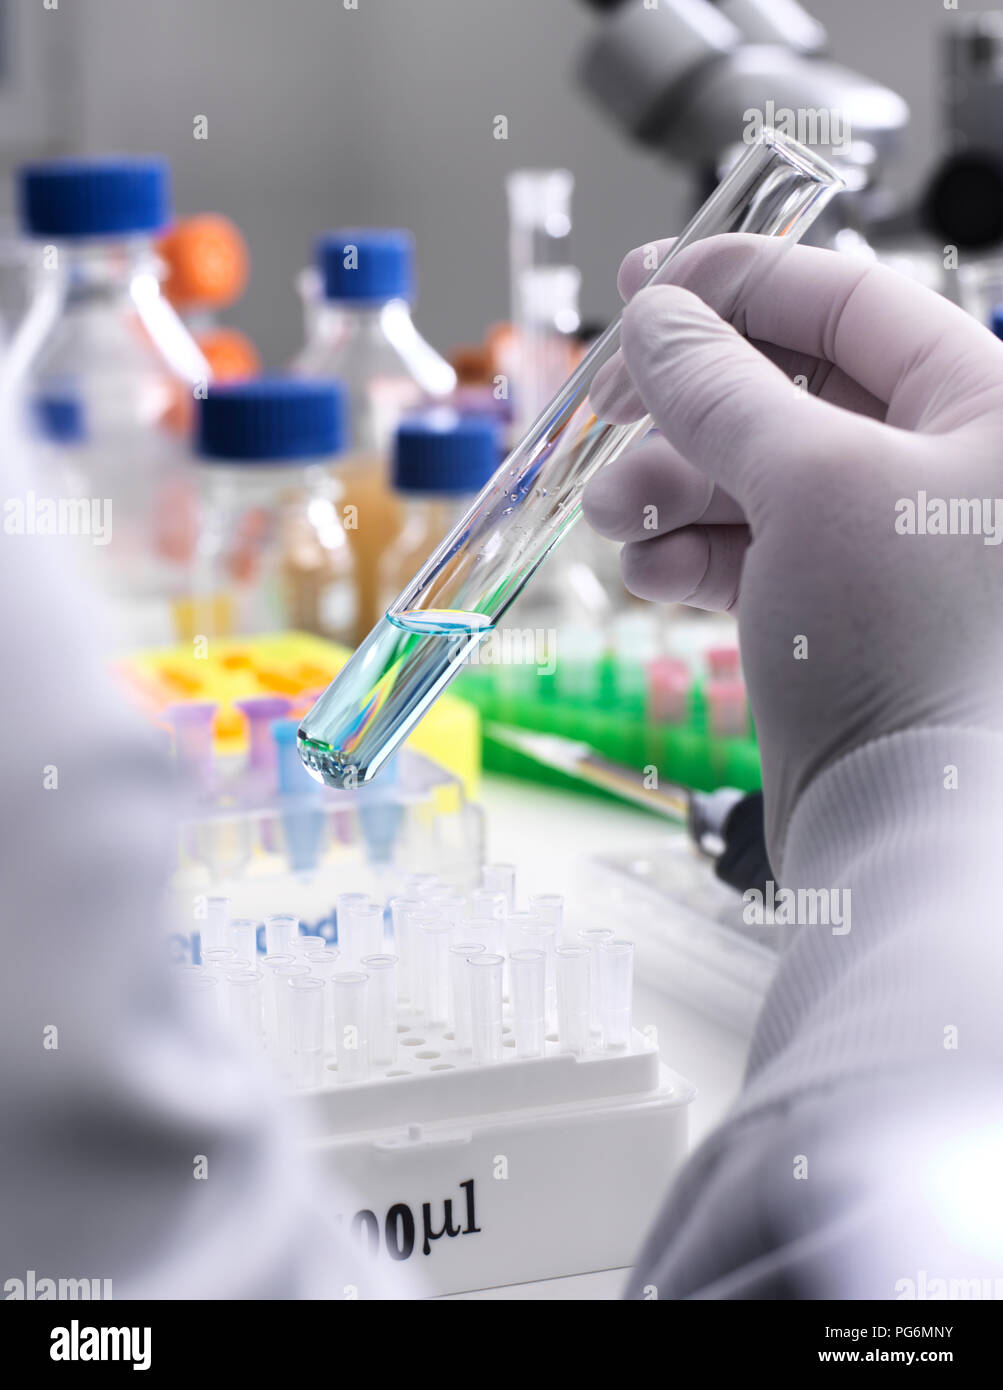 Research experiment, Scientist mixing a chemical formula in a test tube - Stock Image